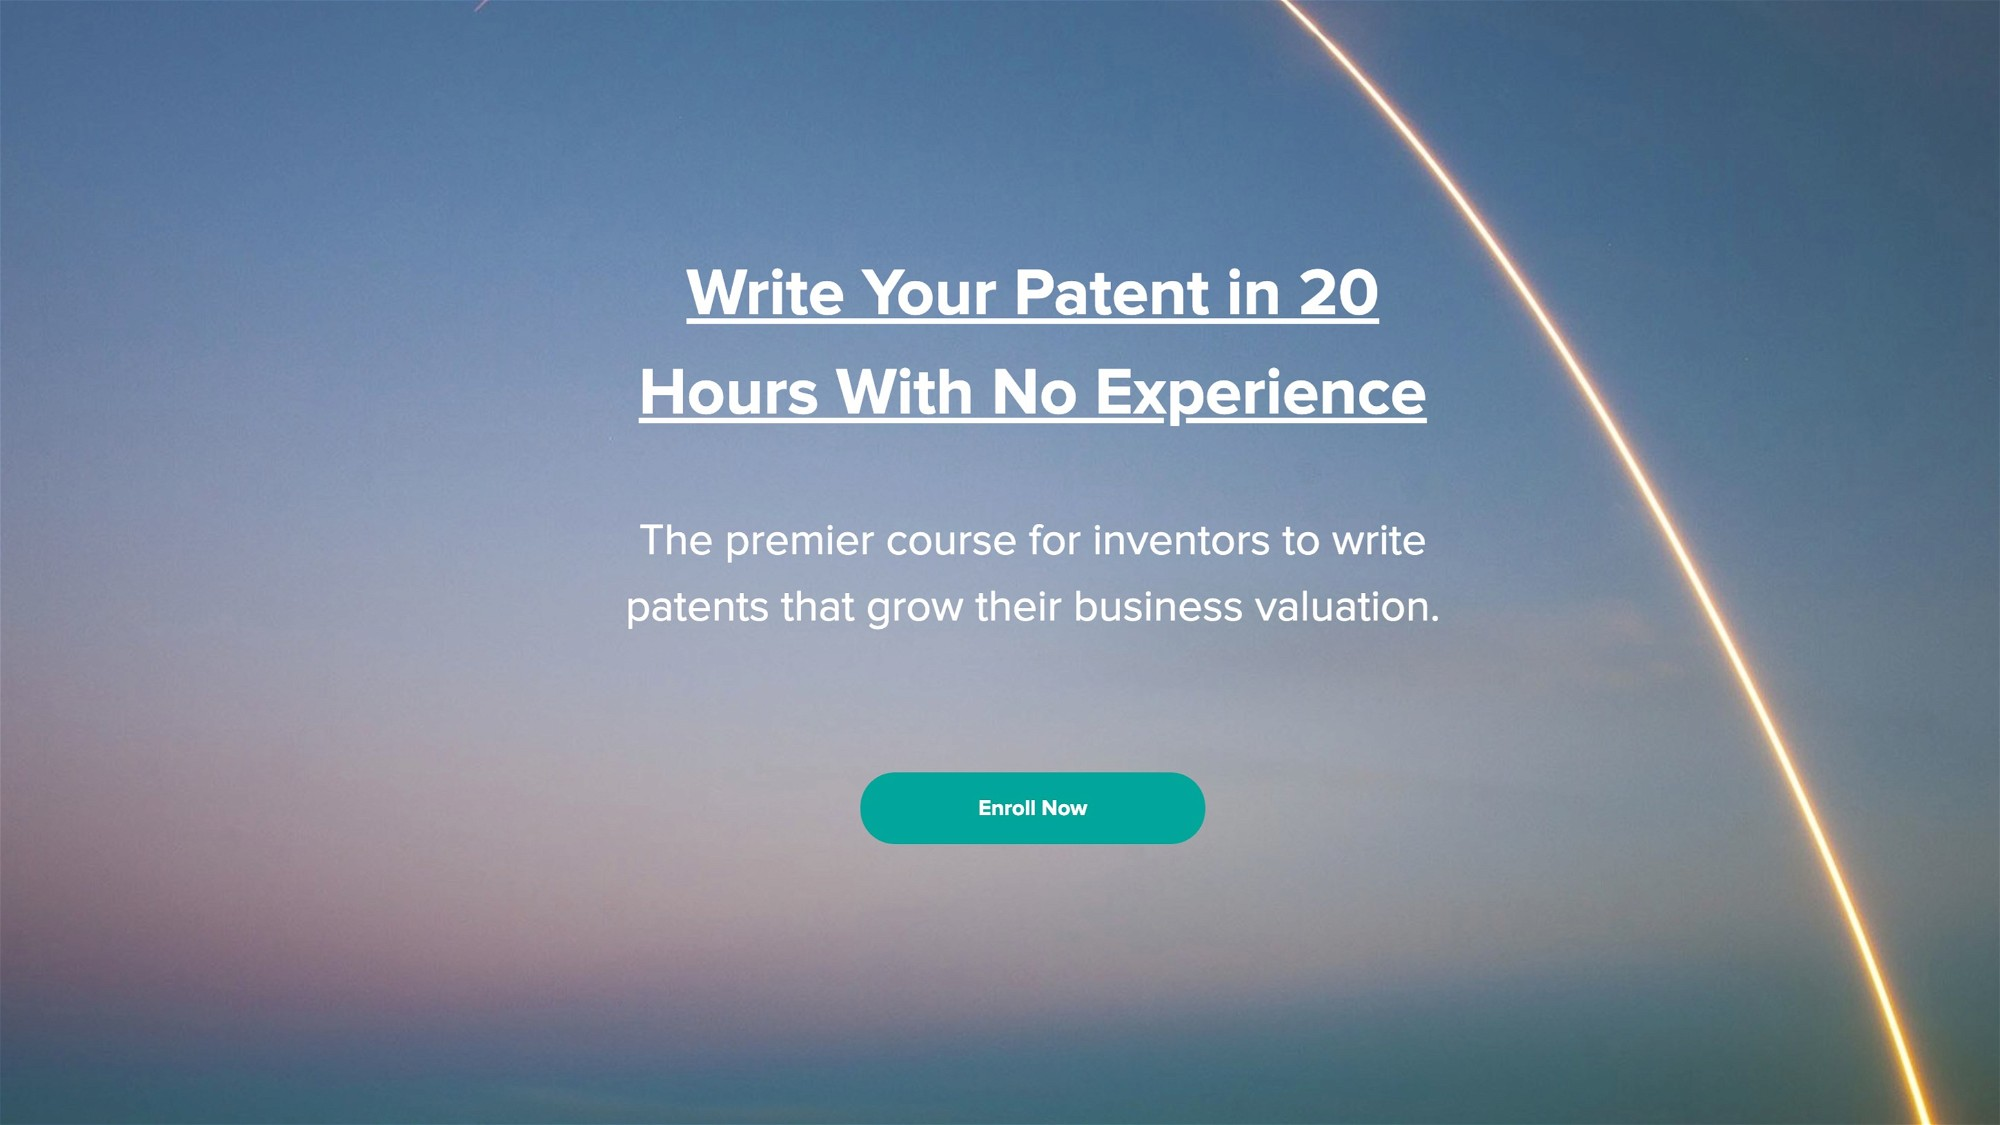 AppSumo Deal for Write Your Patent in 20 Hours With No Experience - Zero to Patent Course